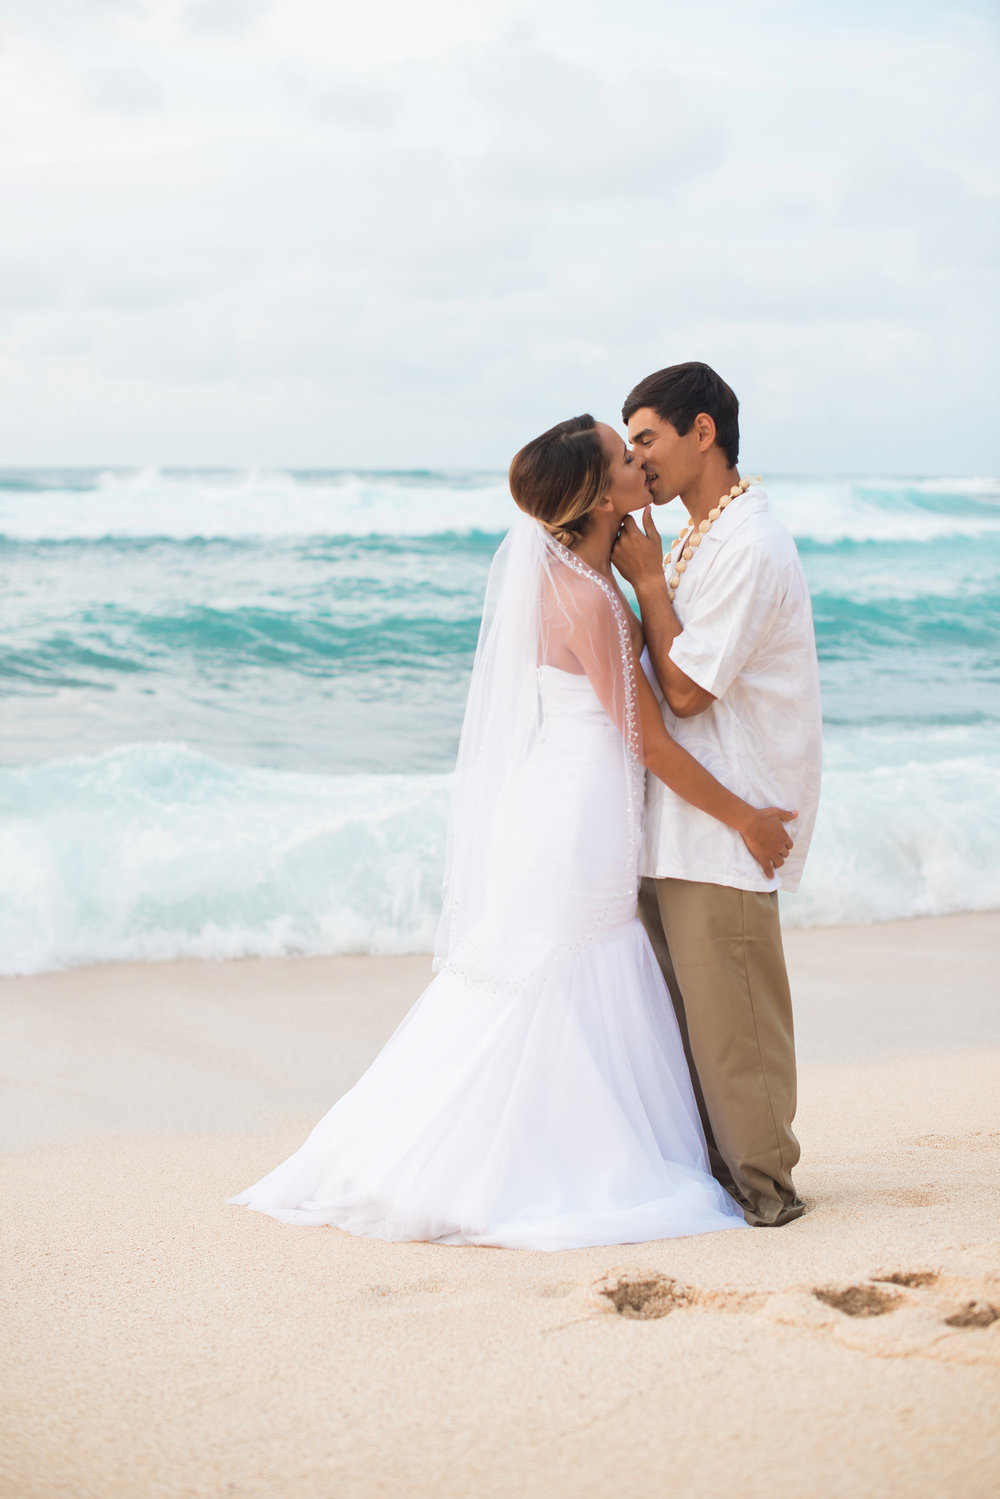 Stunning bride and groom wedding photo from a destination wedding in Hawaii | beach wedding photo inspiration / by Marianne Blackham Photography - a Washington DC based natural light wedding photographer / as seen on www.BrendasWeddingBlog.com